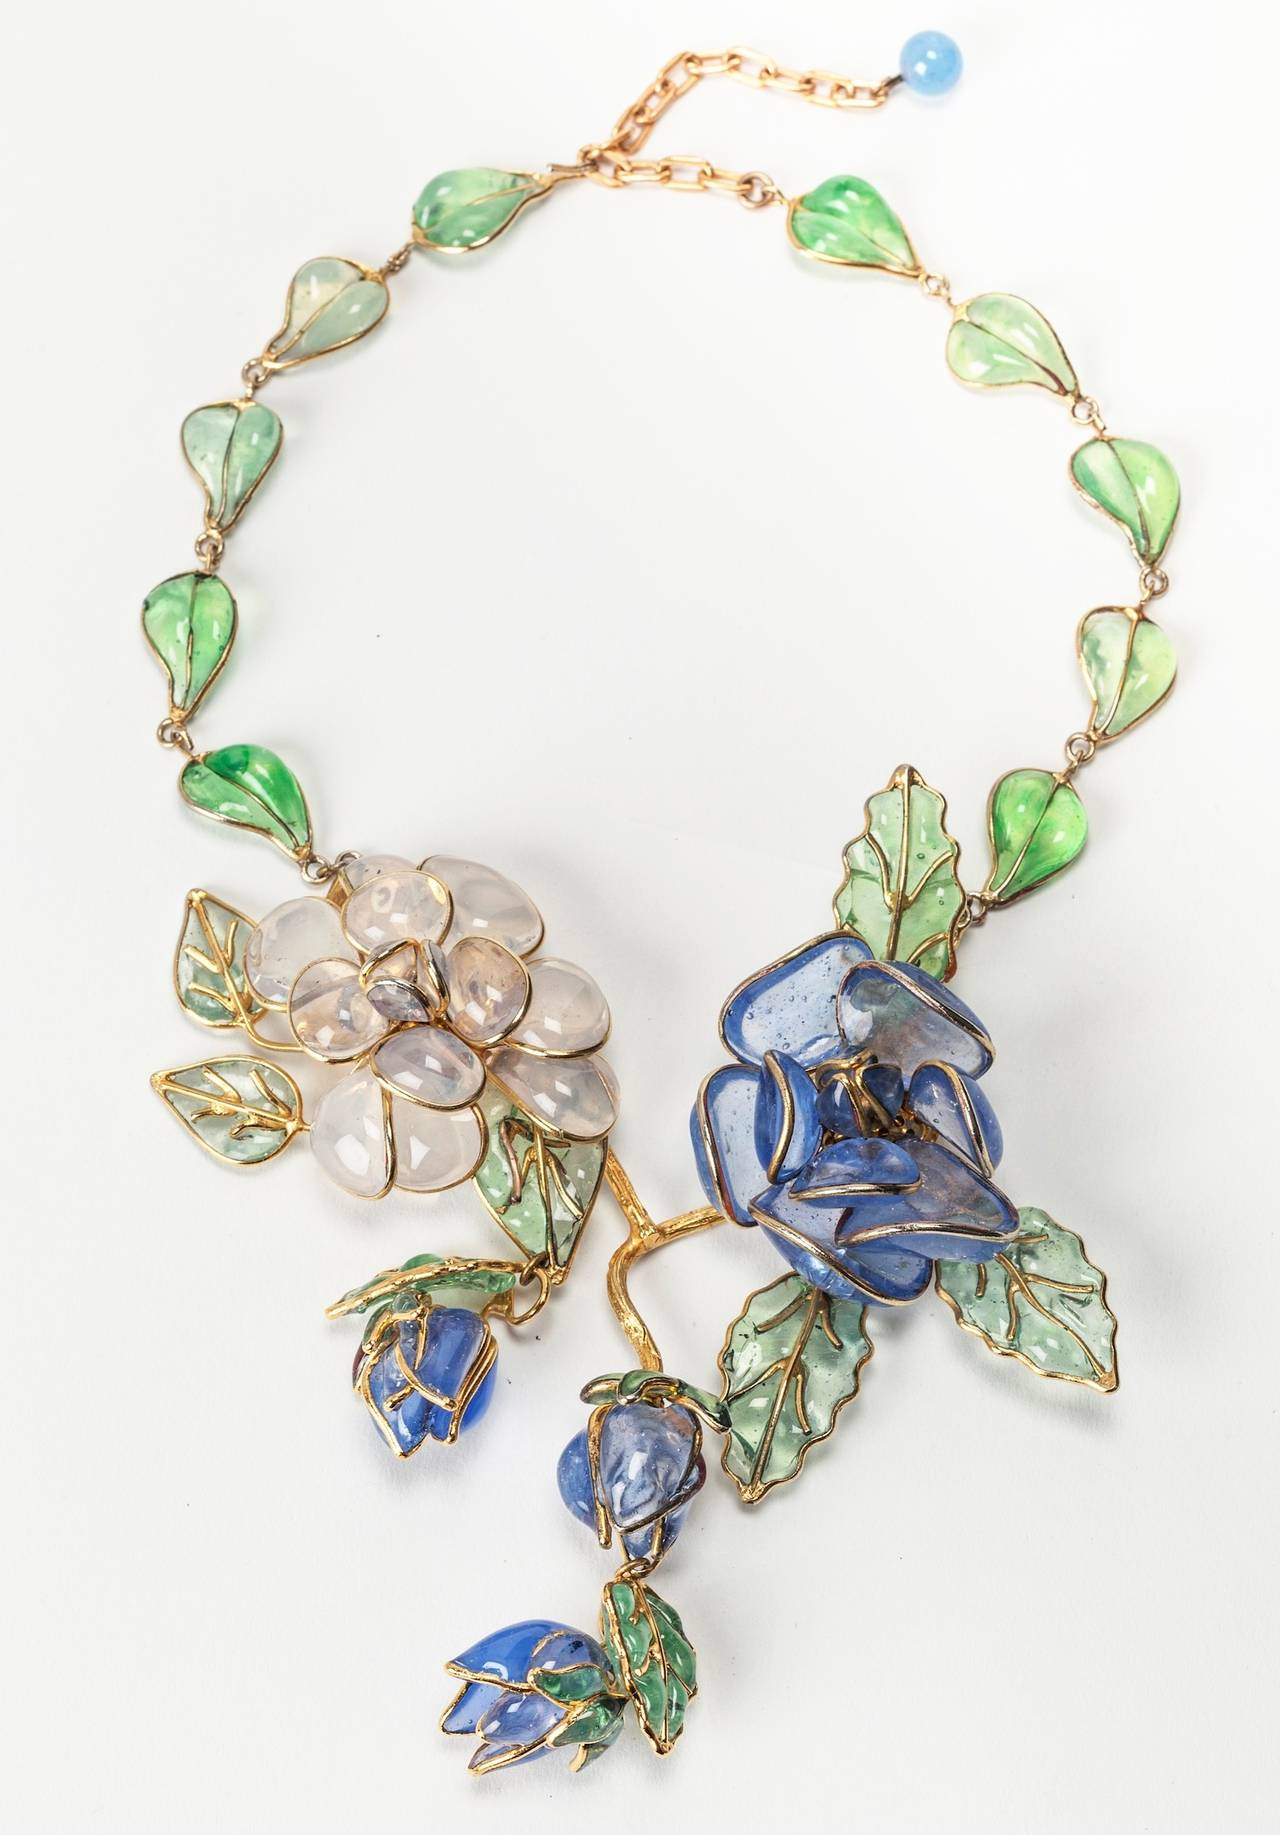 Chanel Glass Enamel Flower Necklace In Excellent Condition For Sale In Riverdale, NY